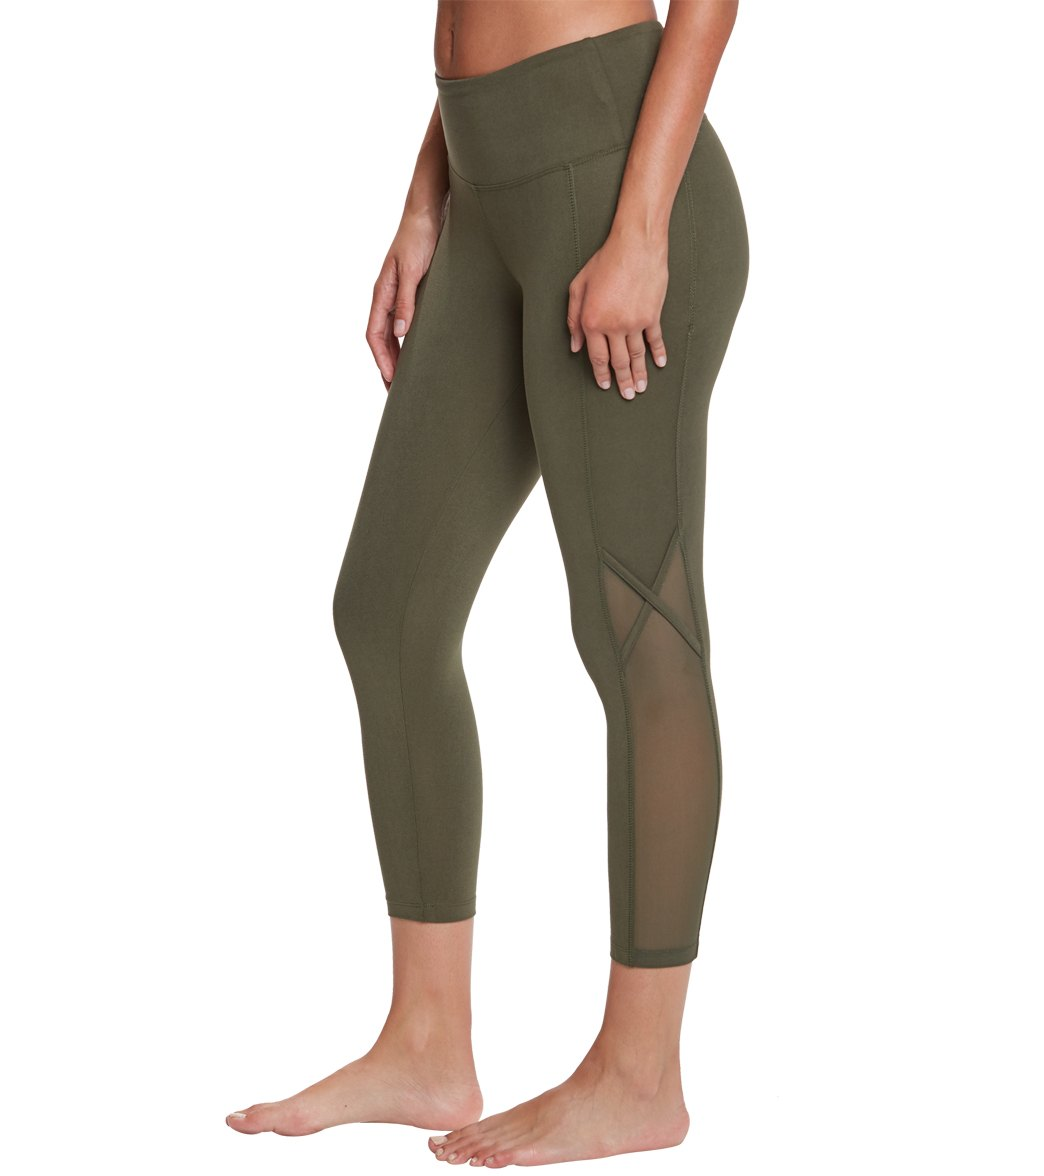 89a40ca443ad Balance Collection Britney High Waisted Yoga Capris at YogaOutlet ...